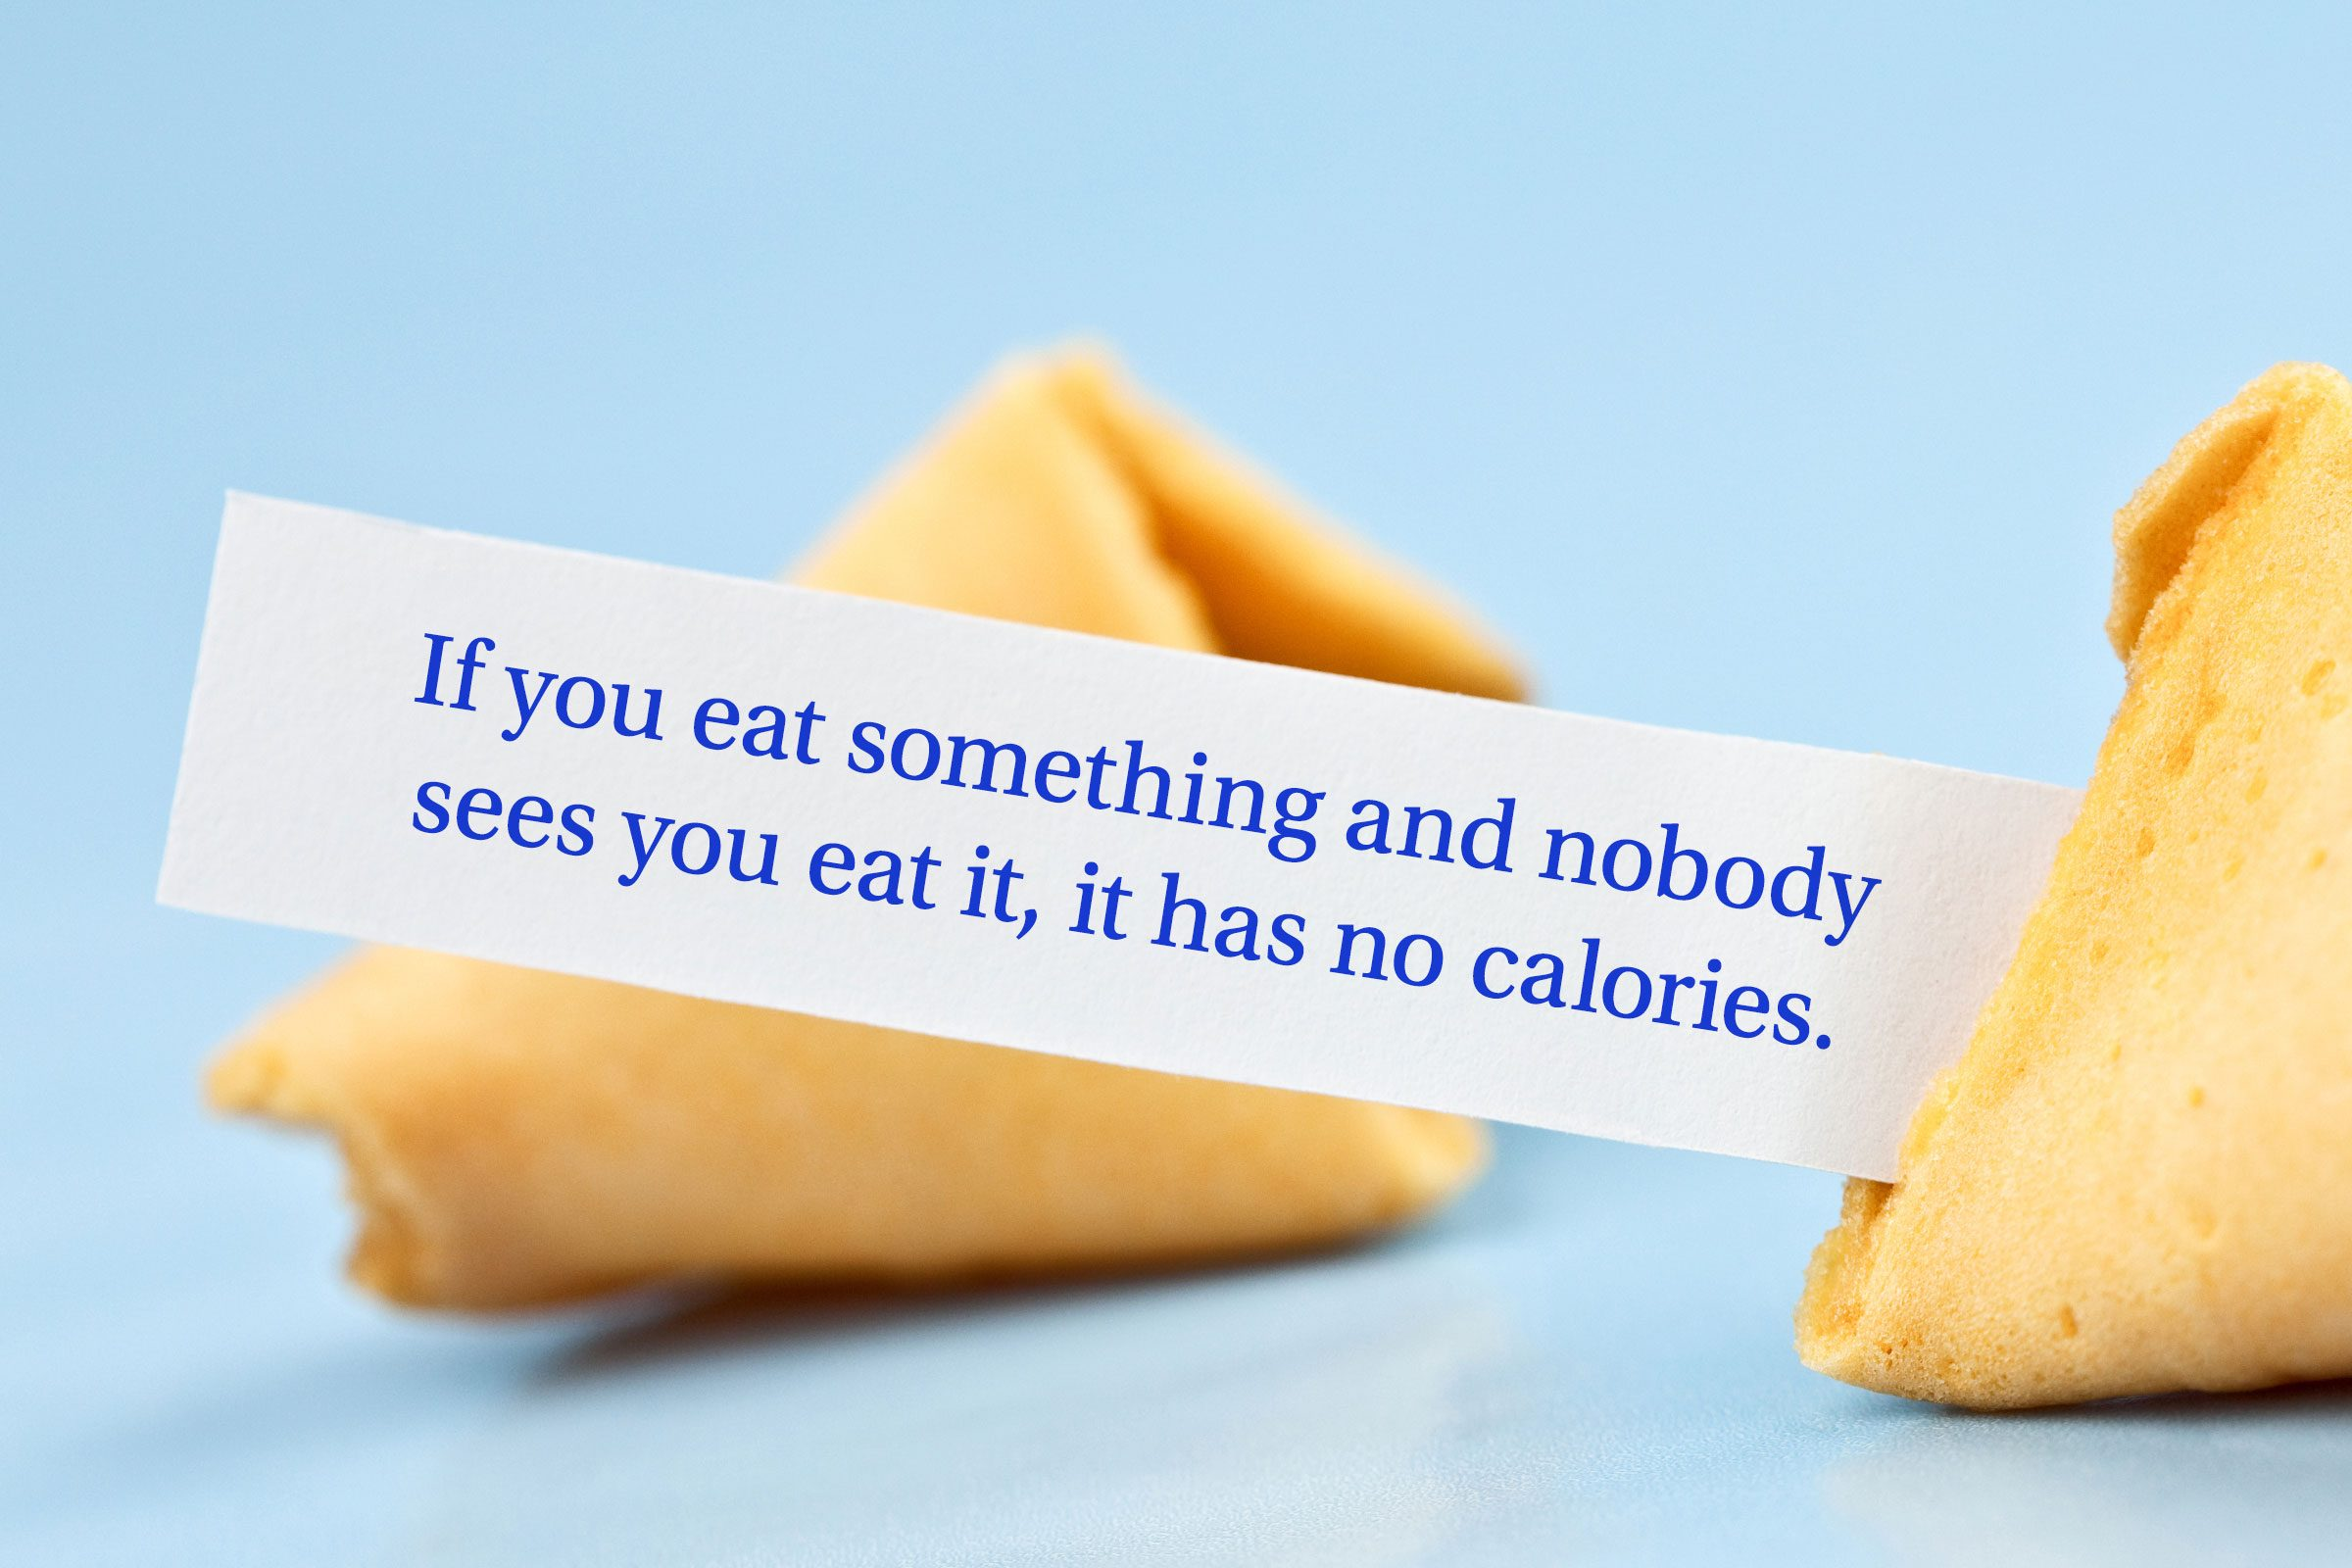 For image: If you eat something and nobody sees you eat it, it has no calories.